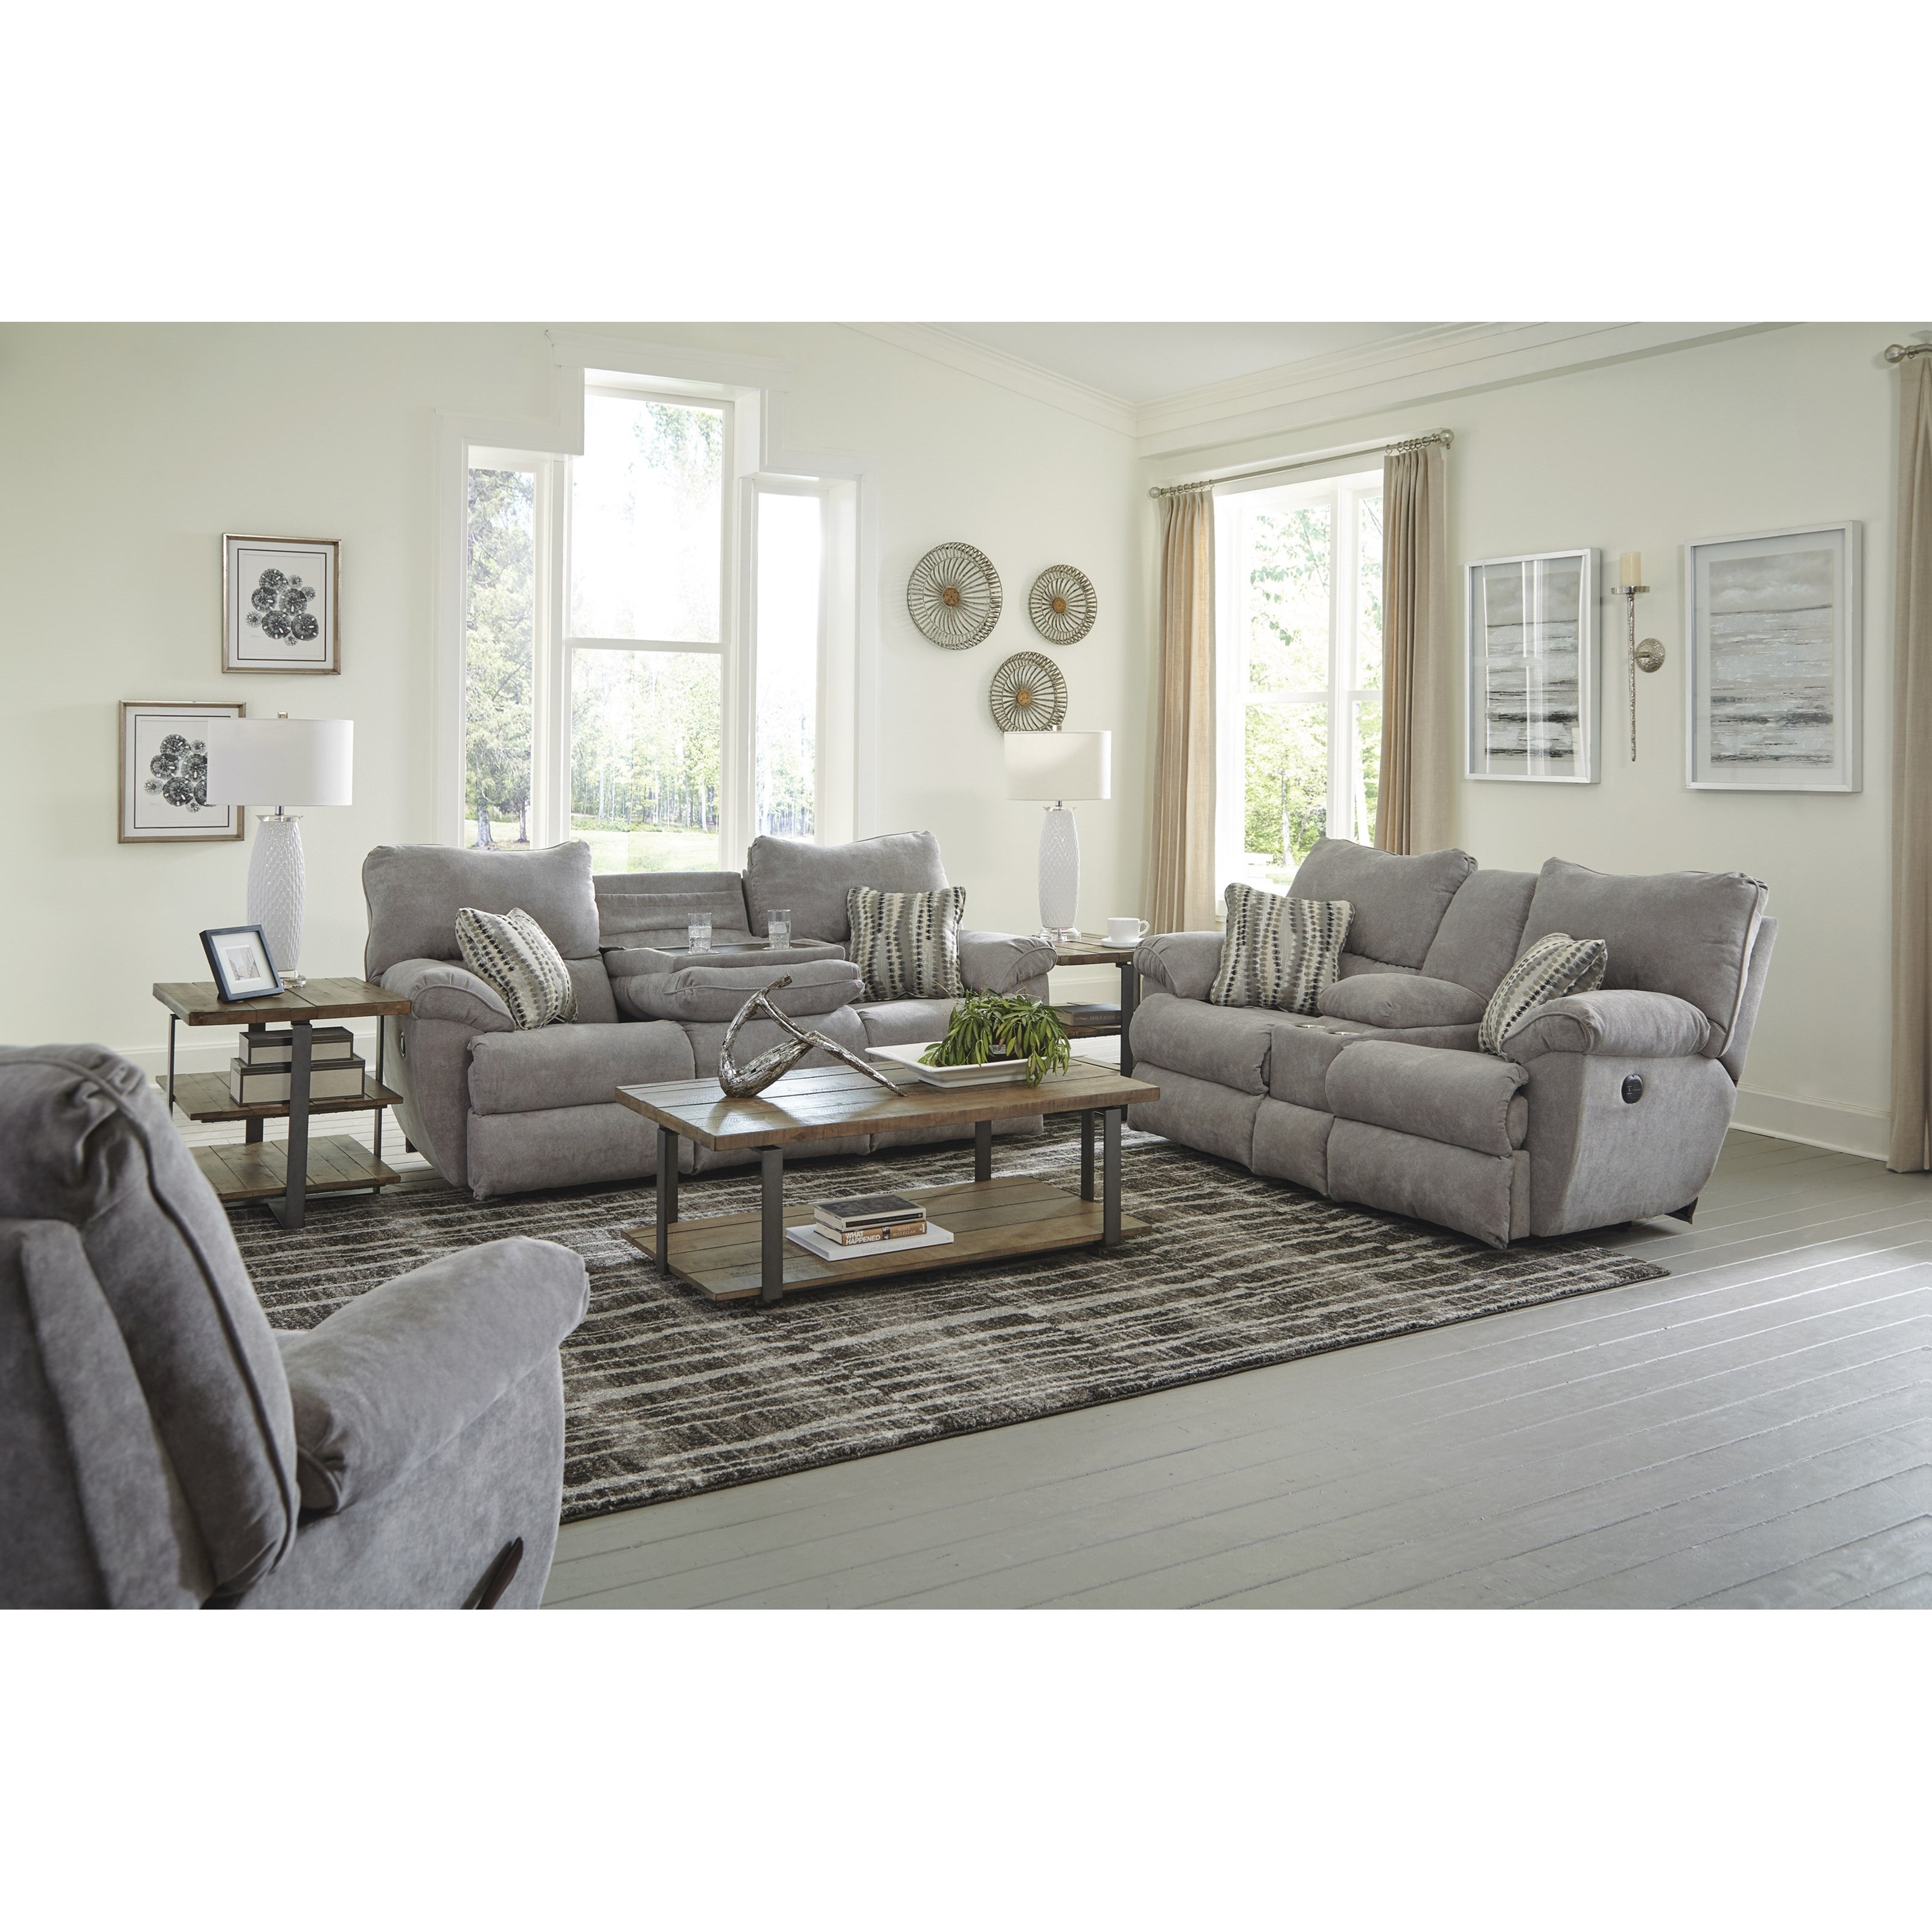 Sadler Power Reclining Living Room Group by Catnapper at Lindy's Furniture Company